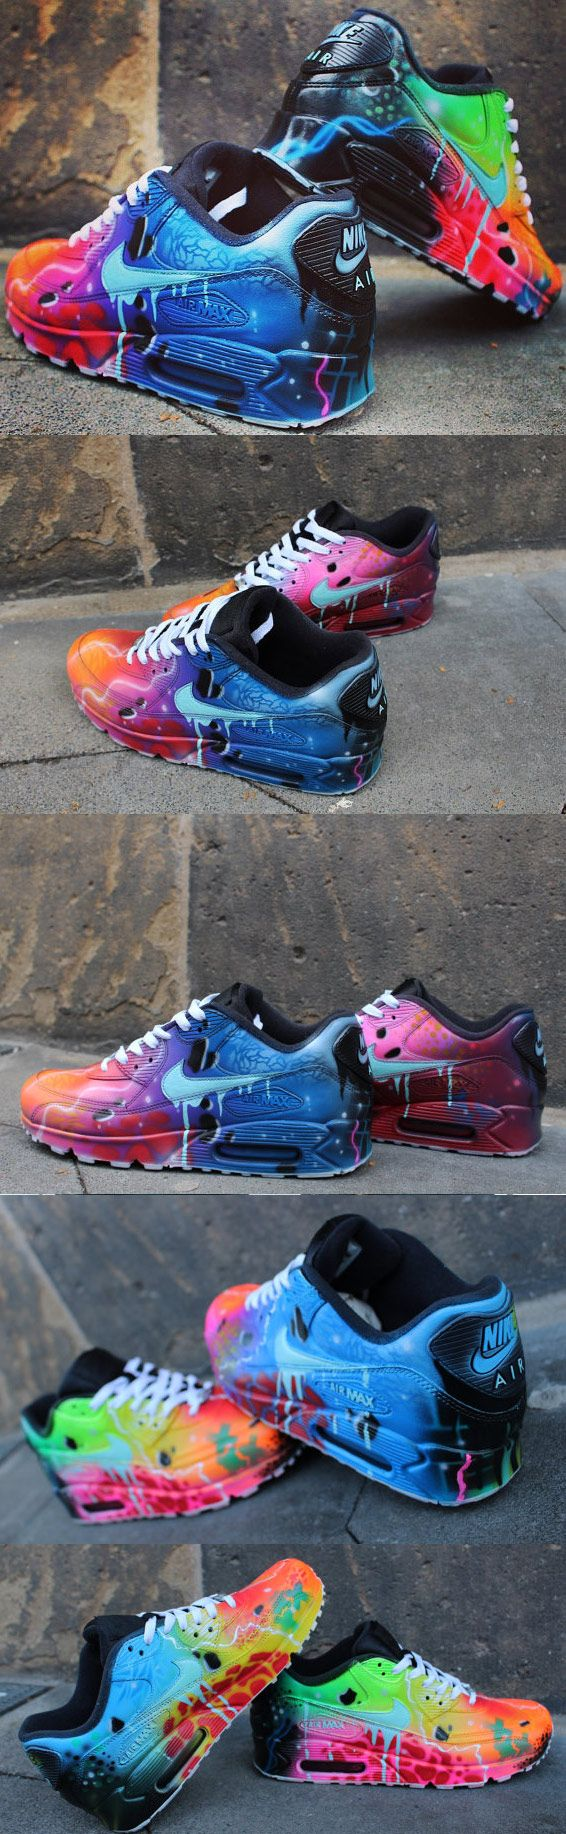 0233600efe ... coupon code for nike air max 90 blue galaxy style painted custom shoes  sneaker airbrush kicks